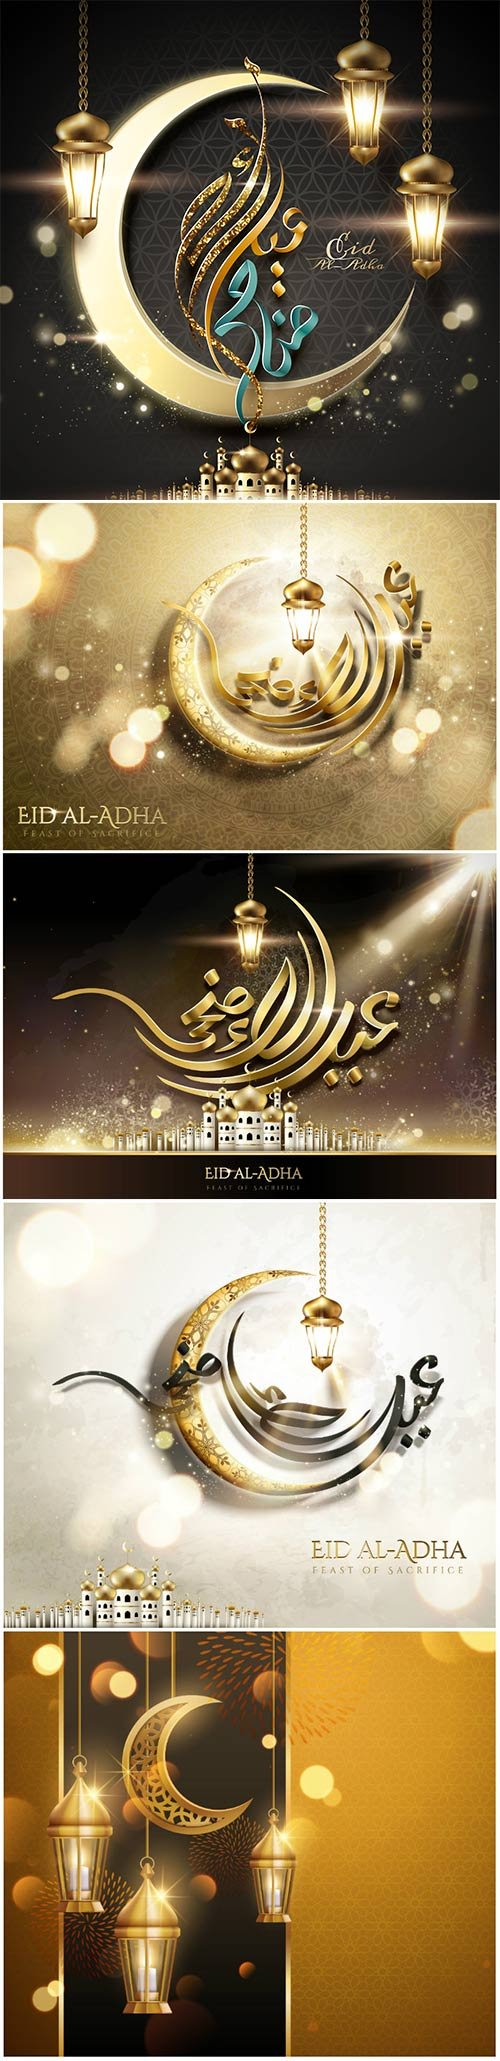 Eid al-adha calligraphy card vector design with hanging lanterns, golden crescent with floral pattern